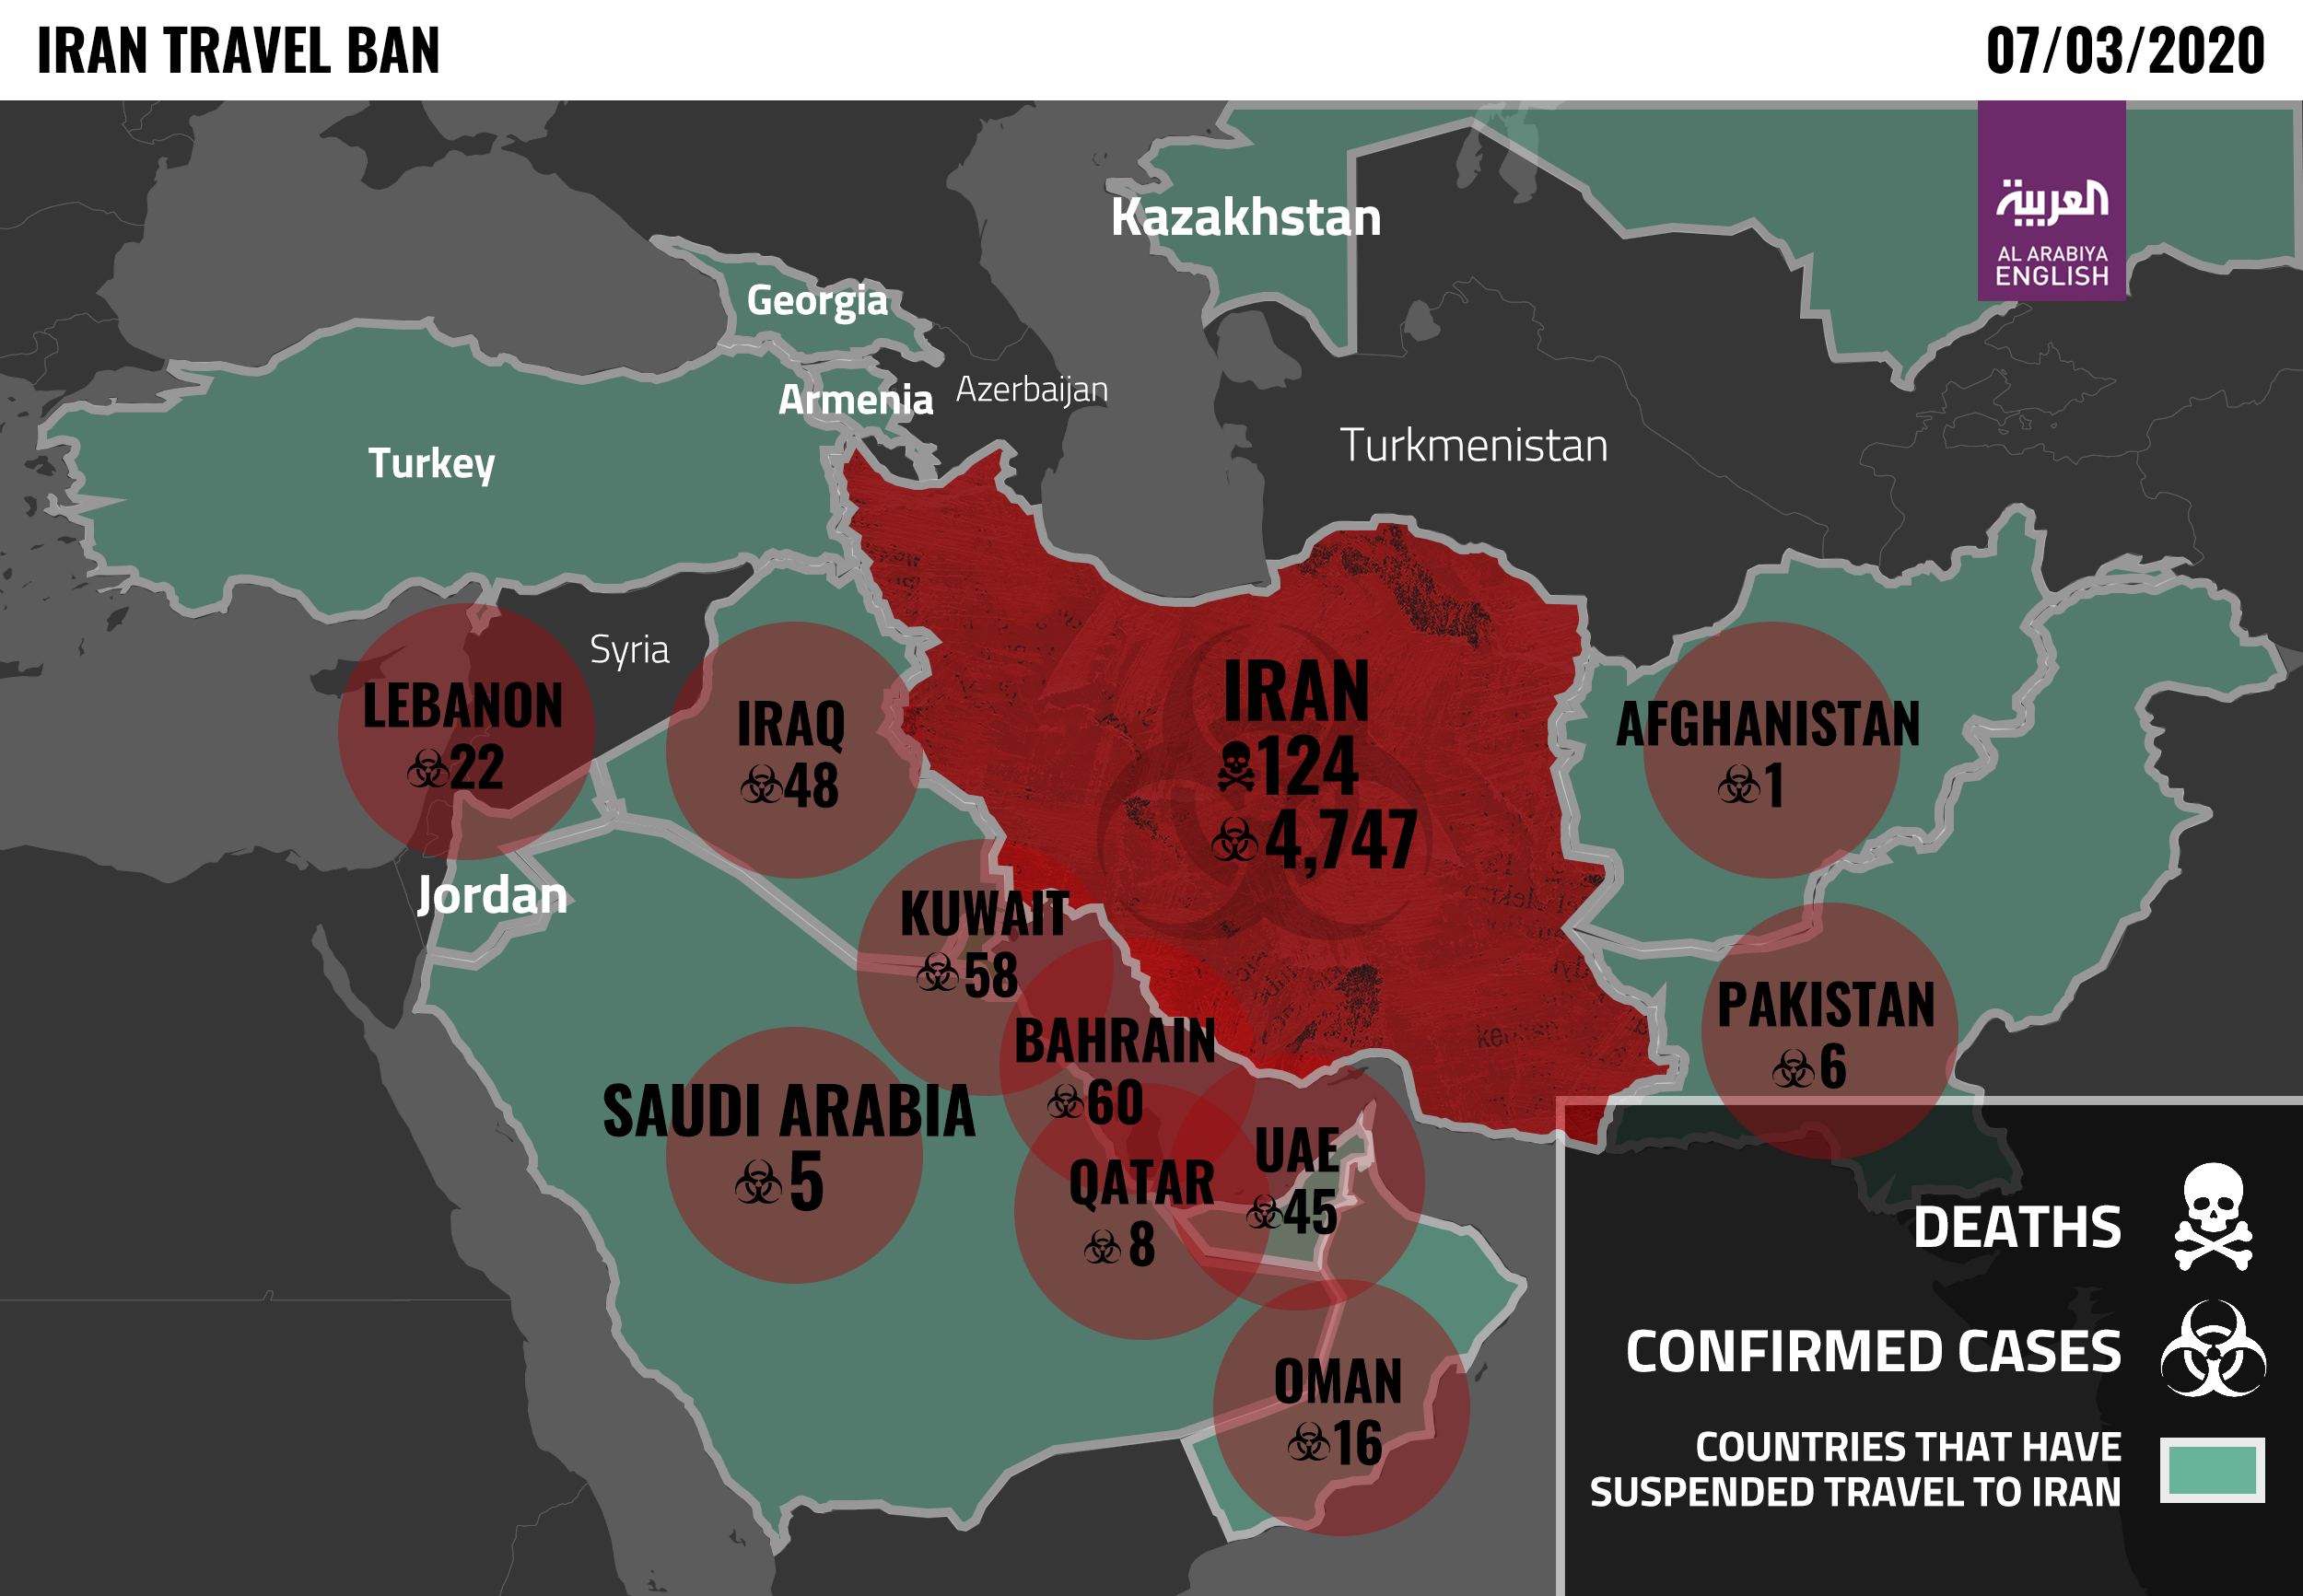 Iran Travel Ban infographic 07-03-20